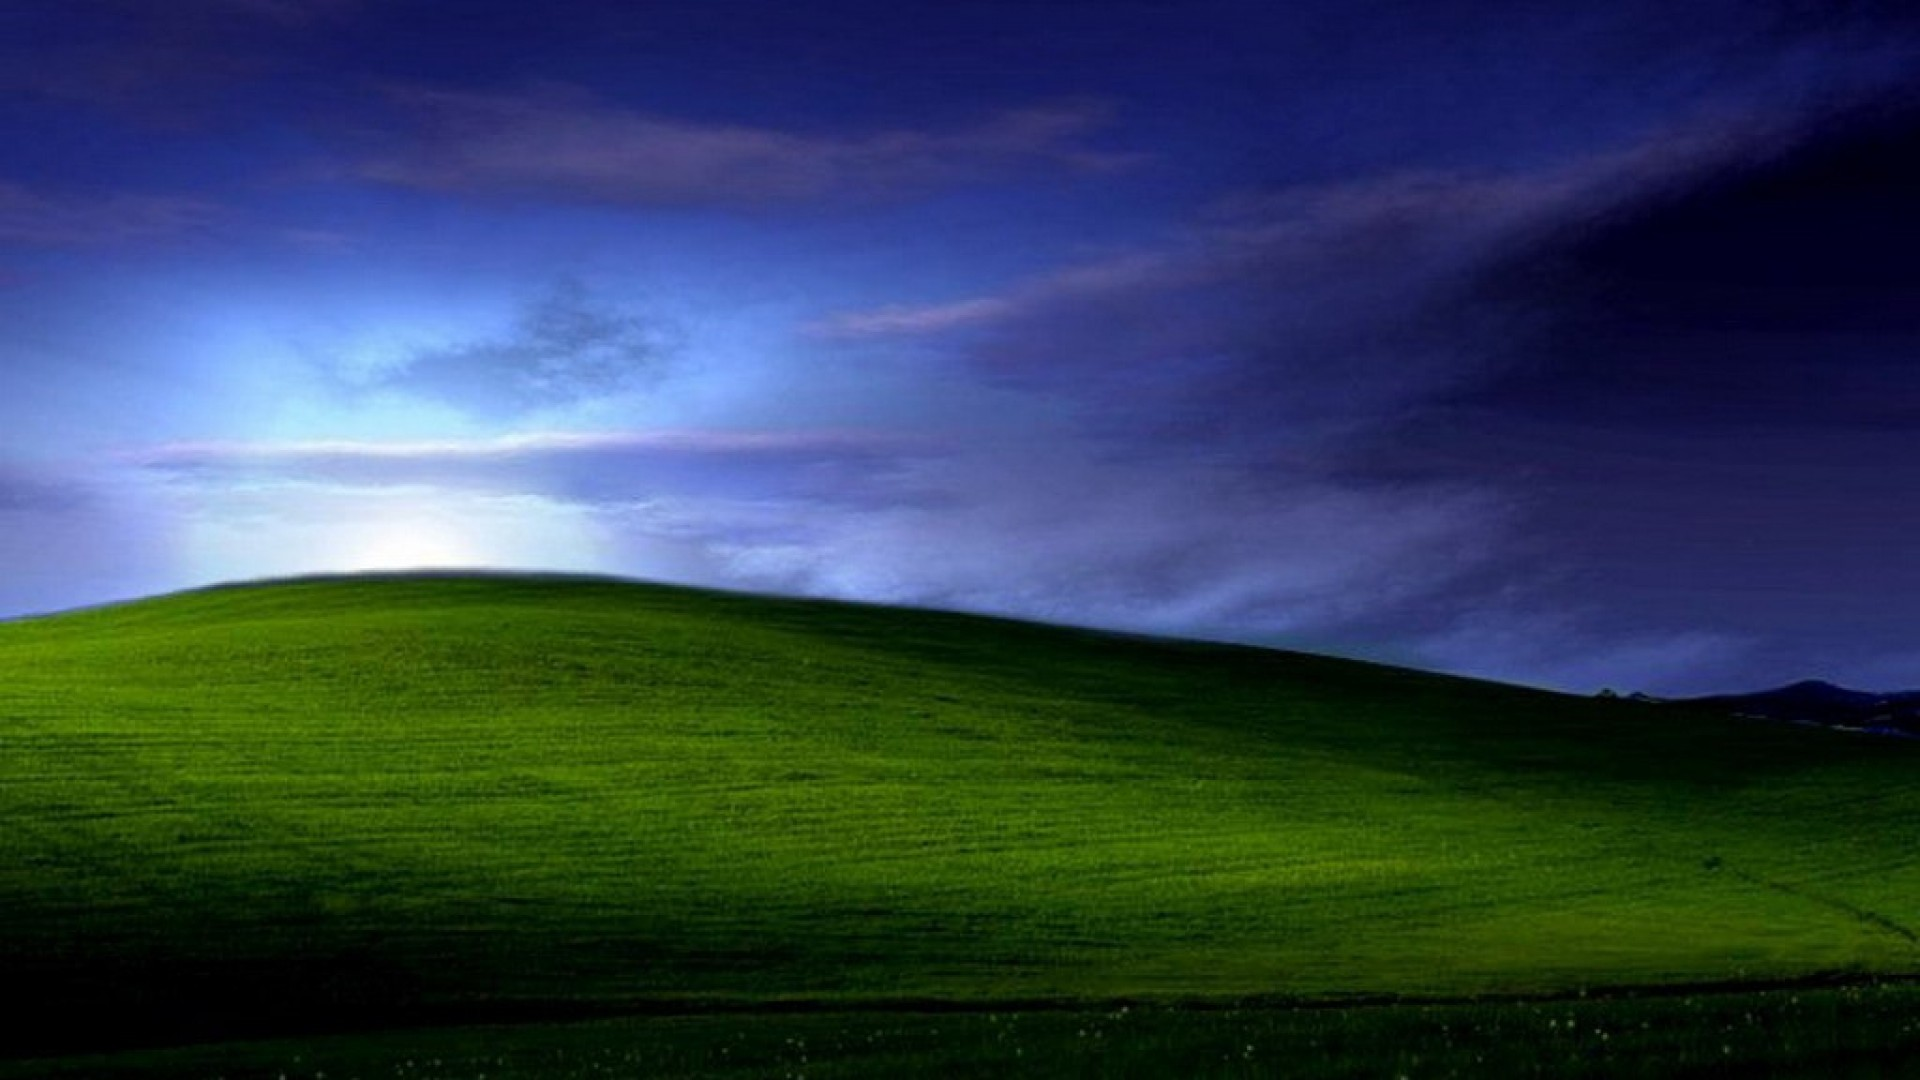 3d Animated Wallpapers And Screensavers Full Version Free Download Windows Xp Backgrounds 183 ①